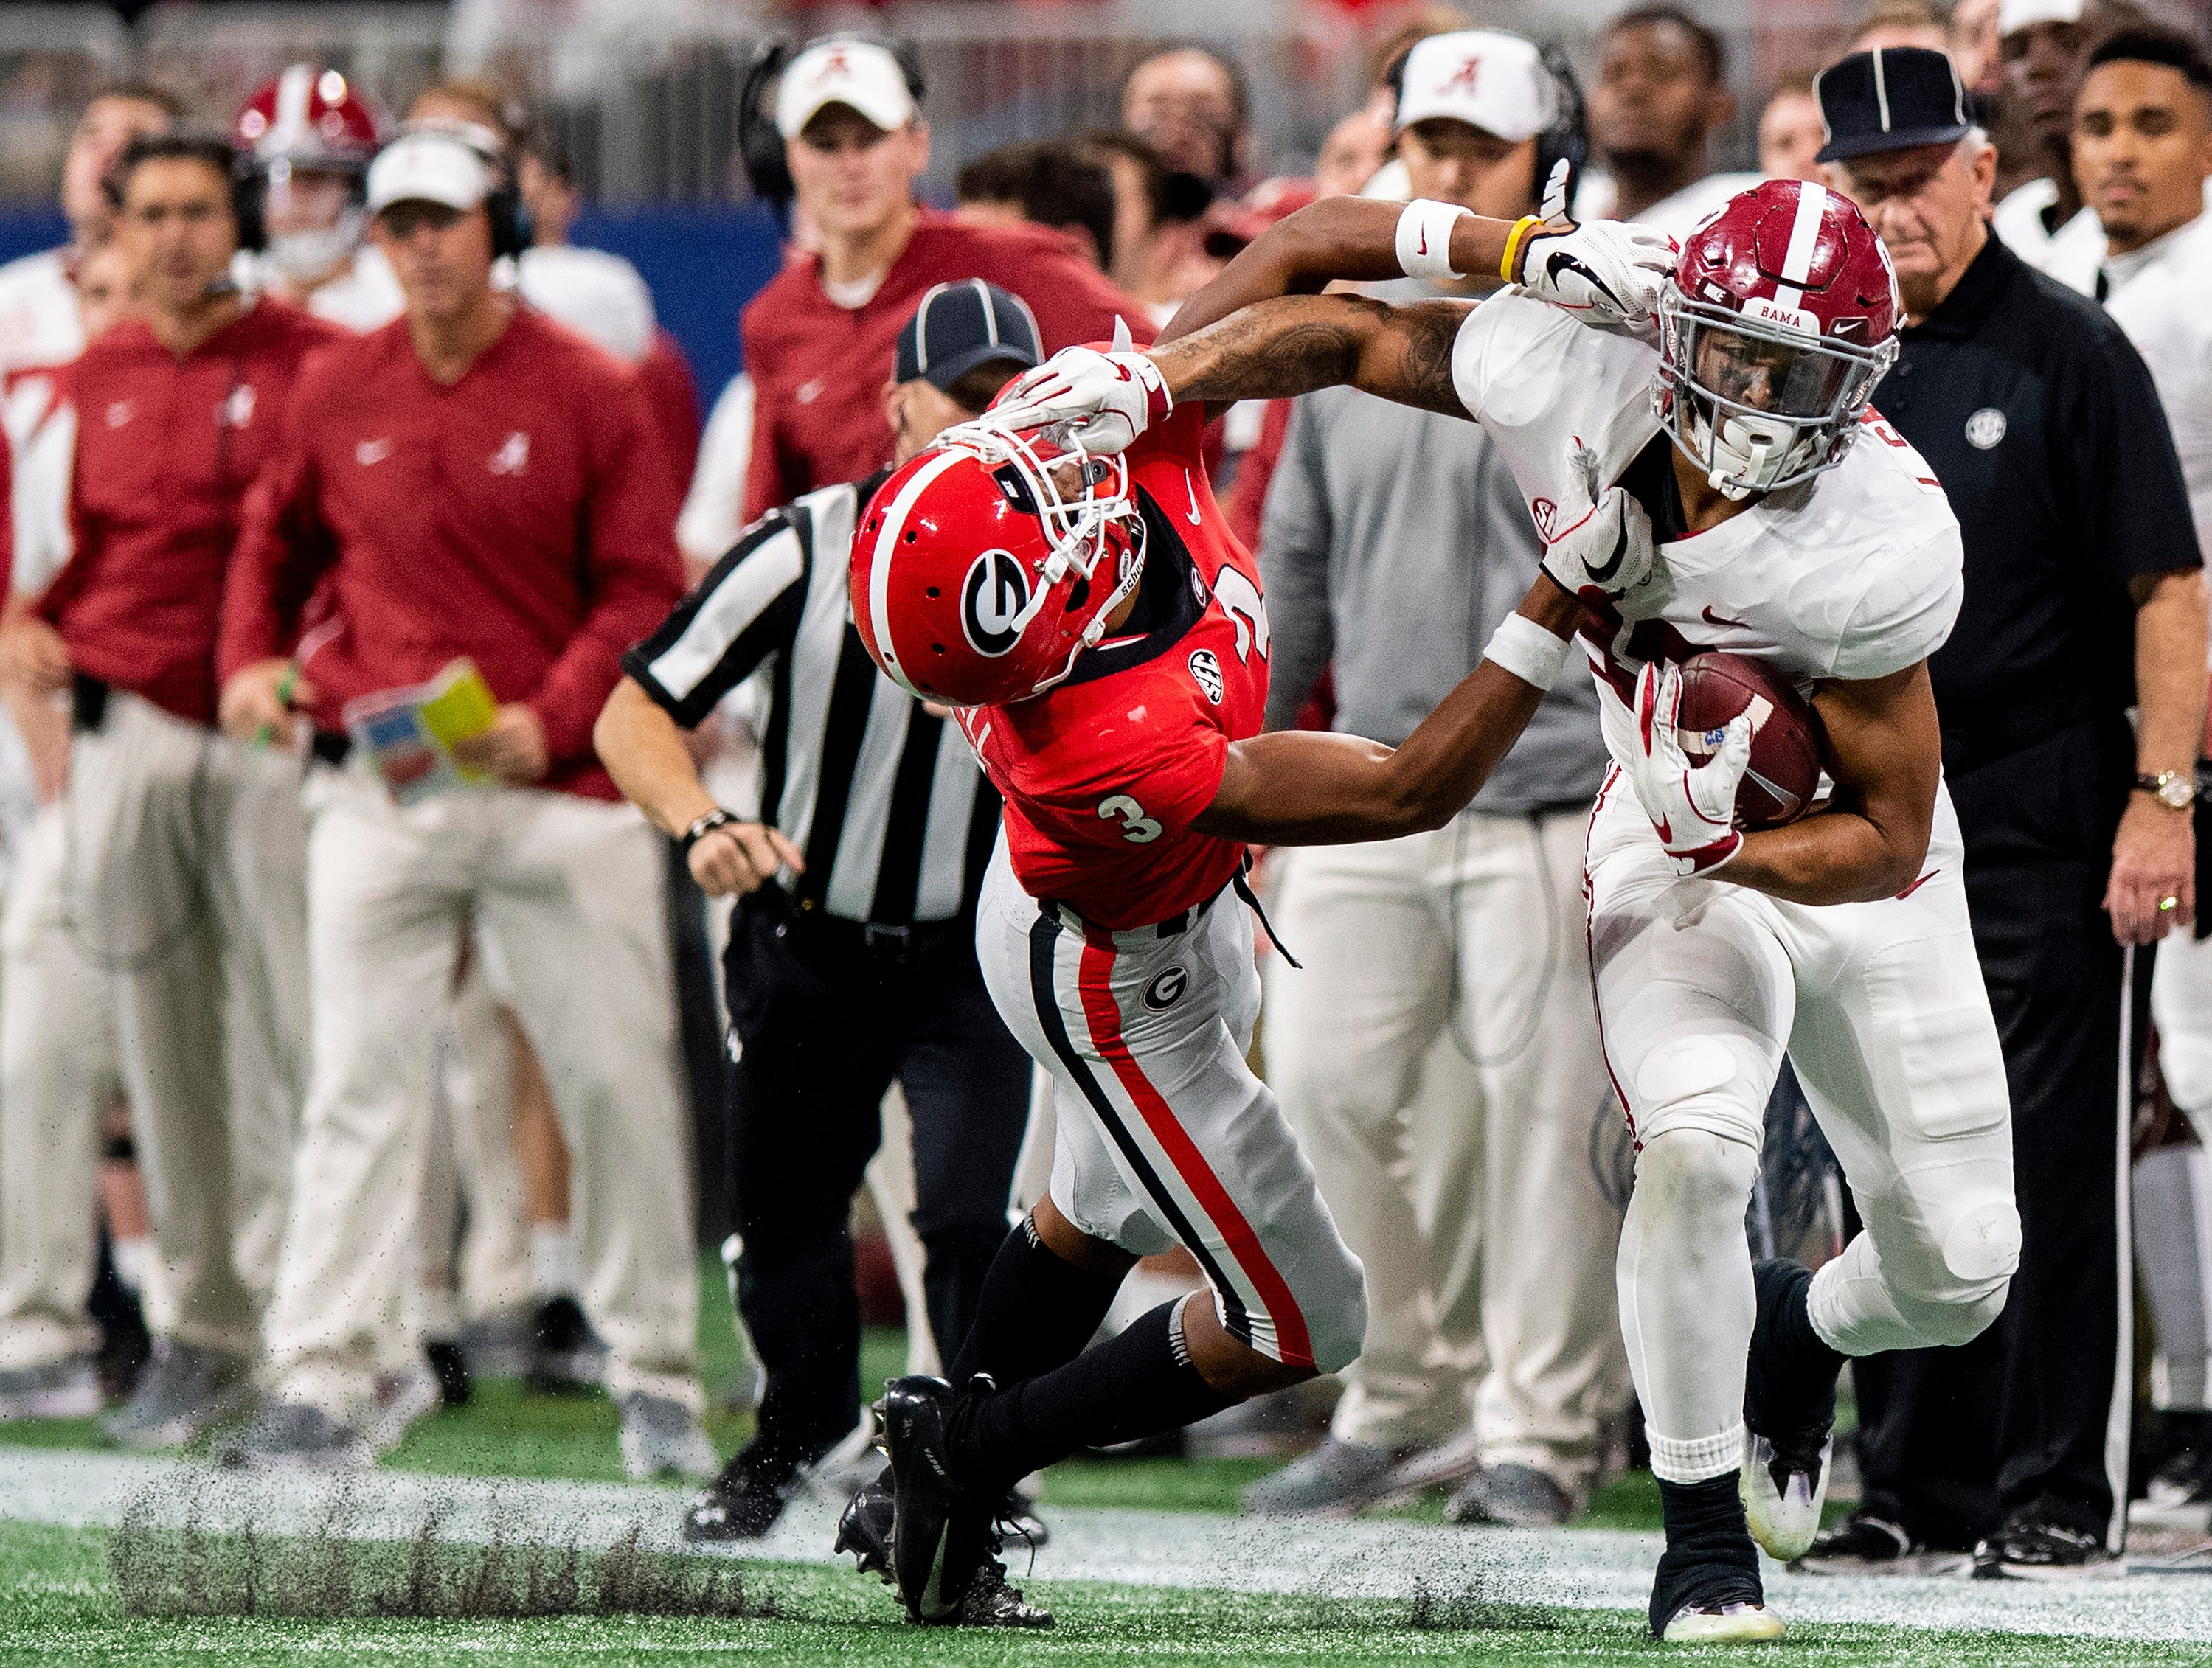 Alabama tight end Irv Smith Jr. (82) fights off the tackle of Georgia defensive back Tyson Campbell (3) during first half action of the SEC Championship Game at Mercedes Benz Stadium in Atlanta, Ga., on Saturday December 1, 2018.